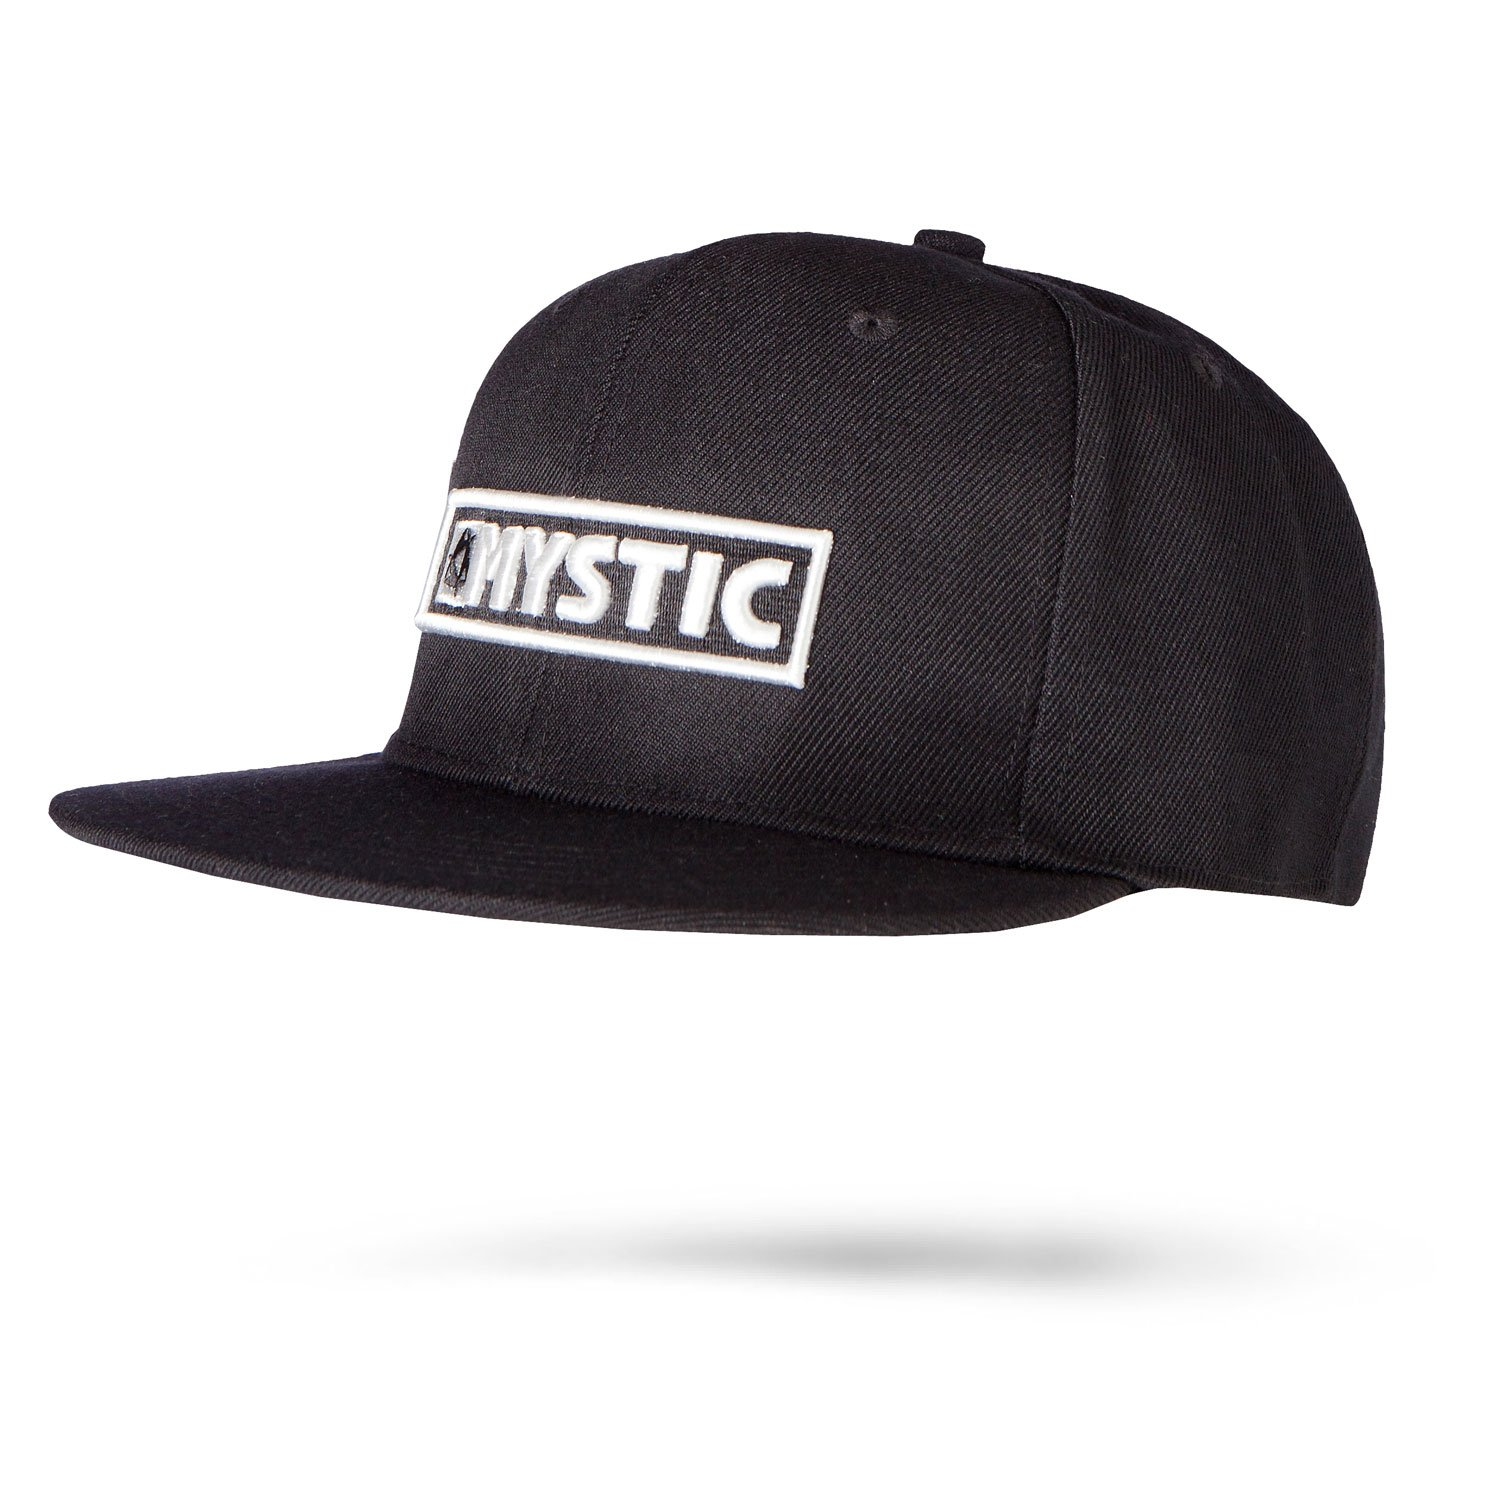 Mystic Local Cap Black Size - - One Size